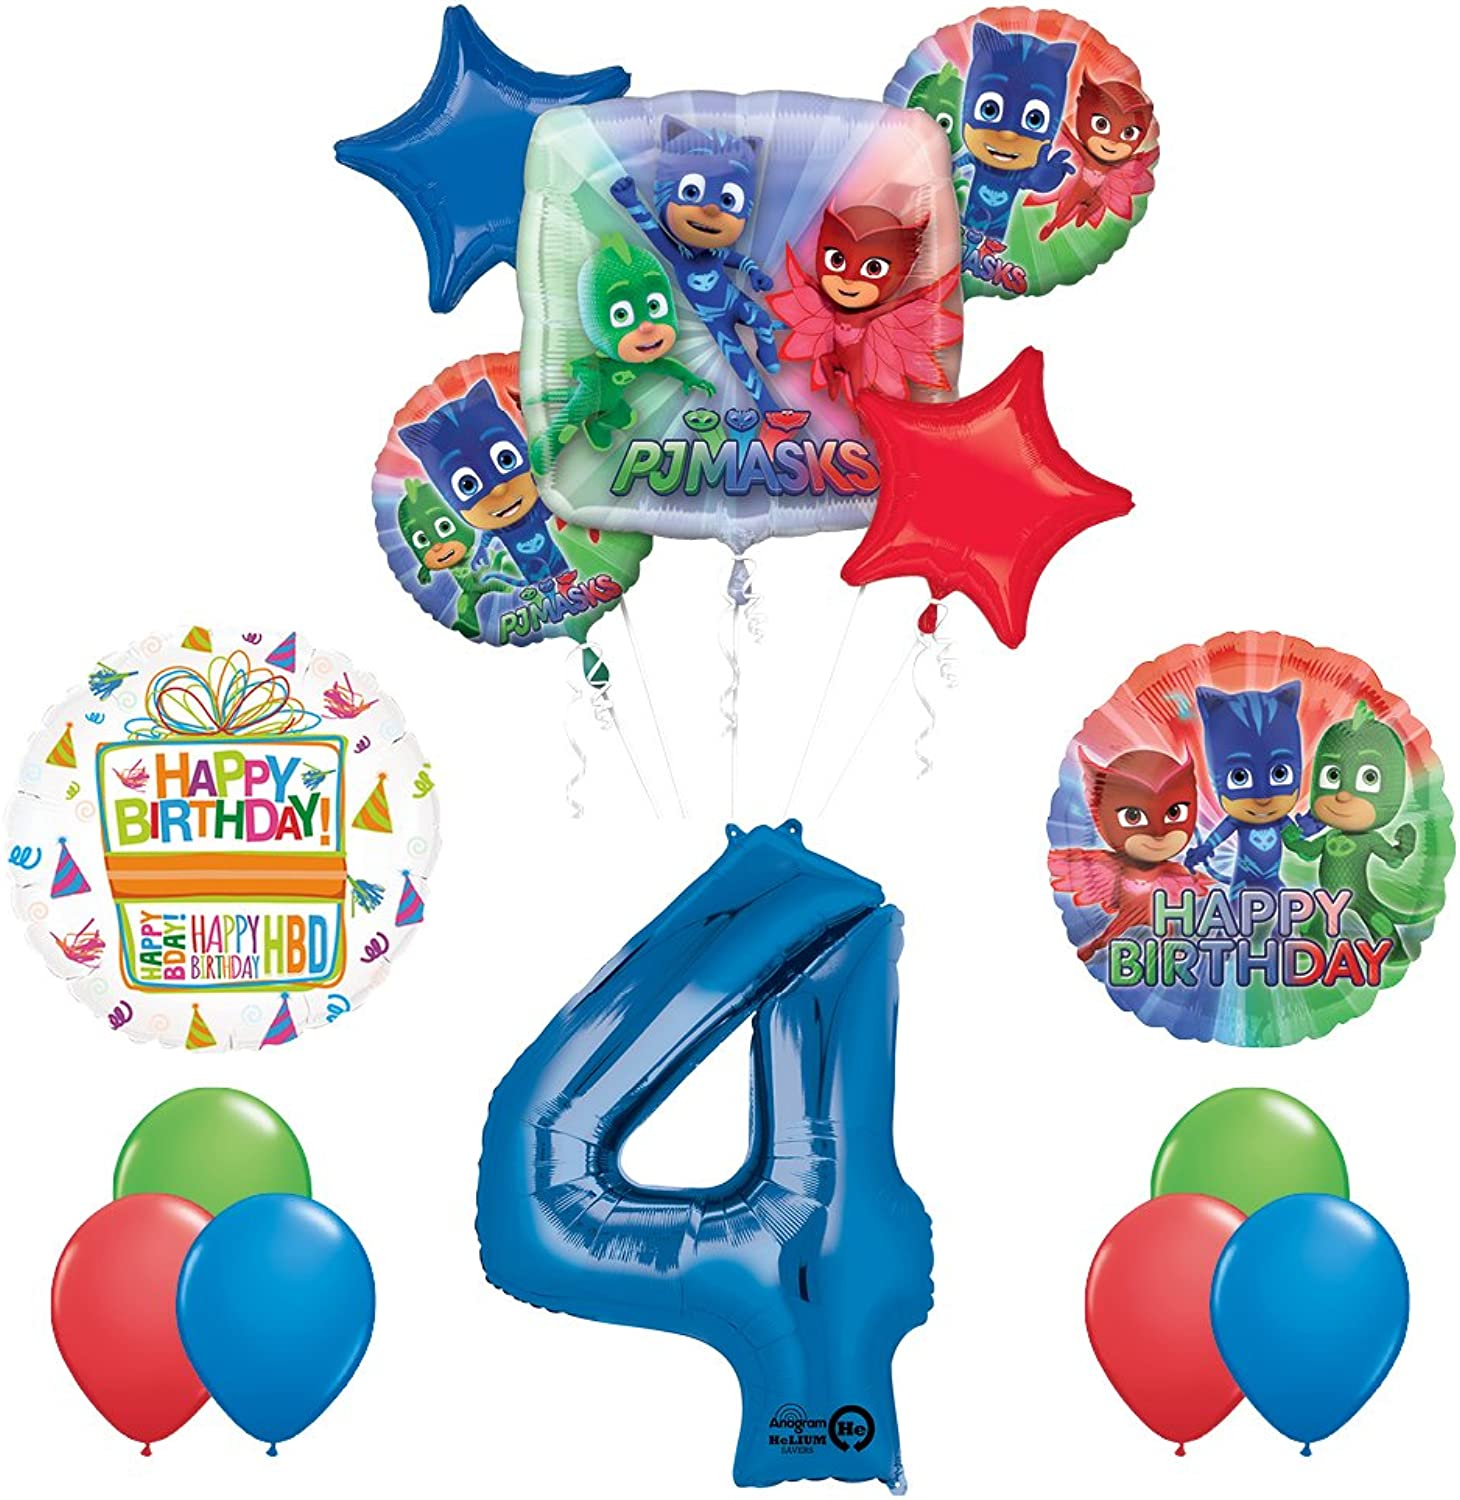 The Ultimate PJ MASKS 4th Birthday Party Supplies and Balloon decorations